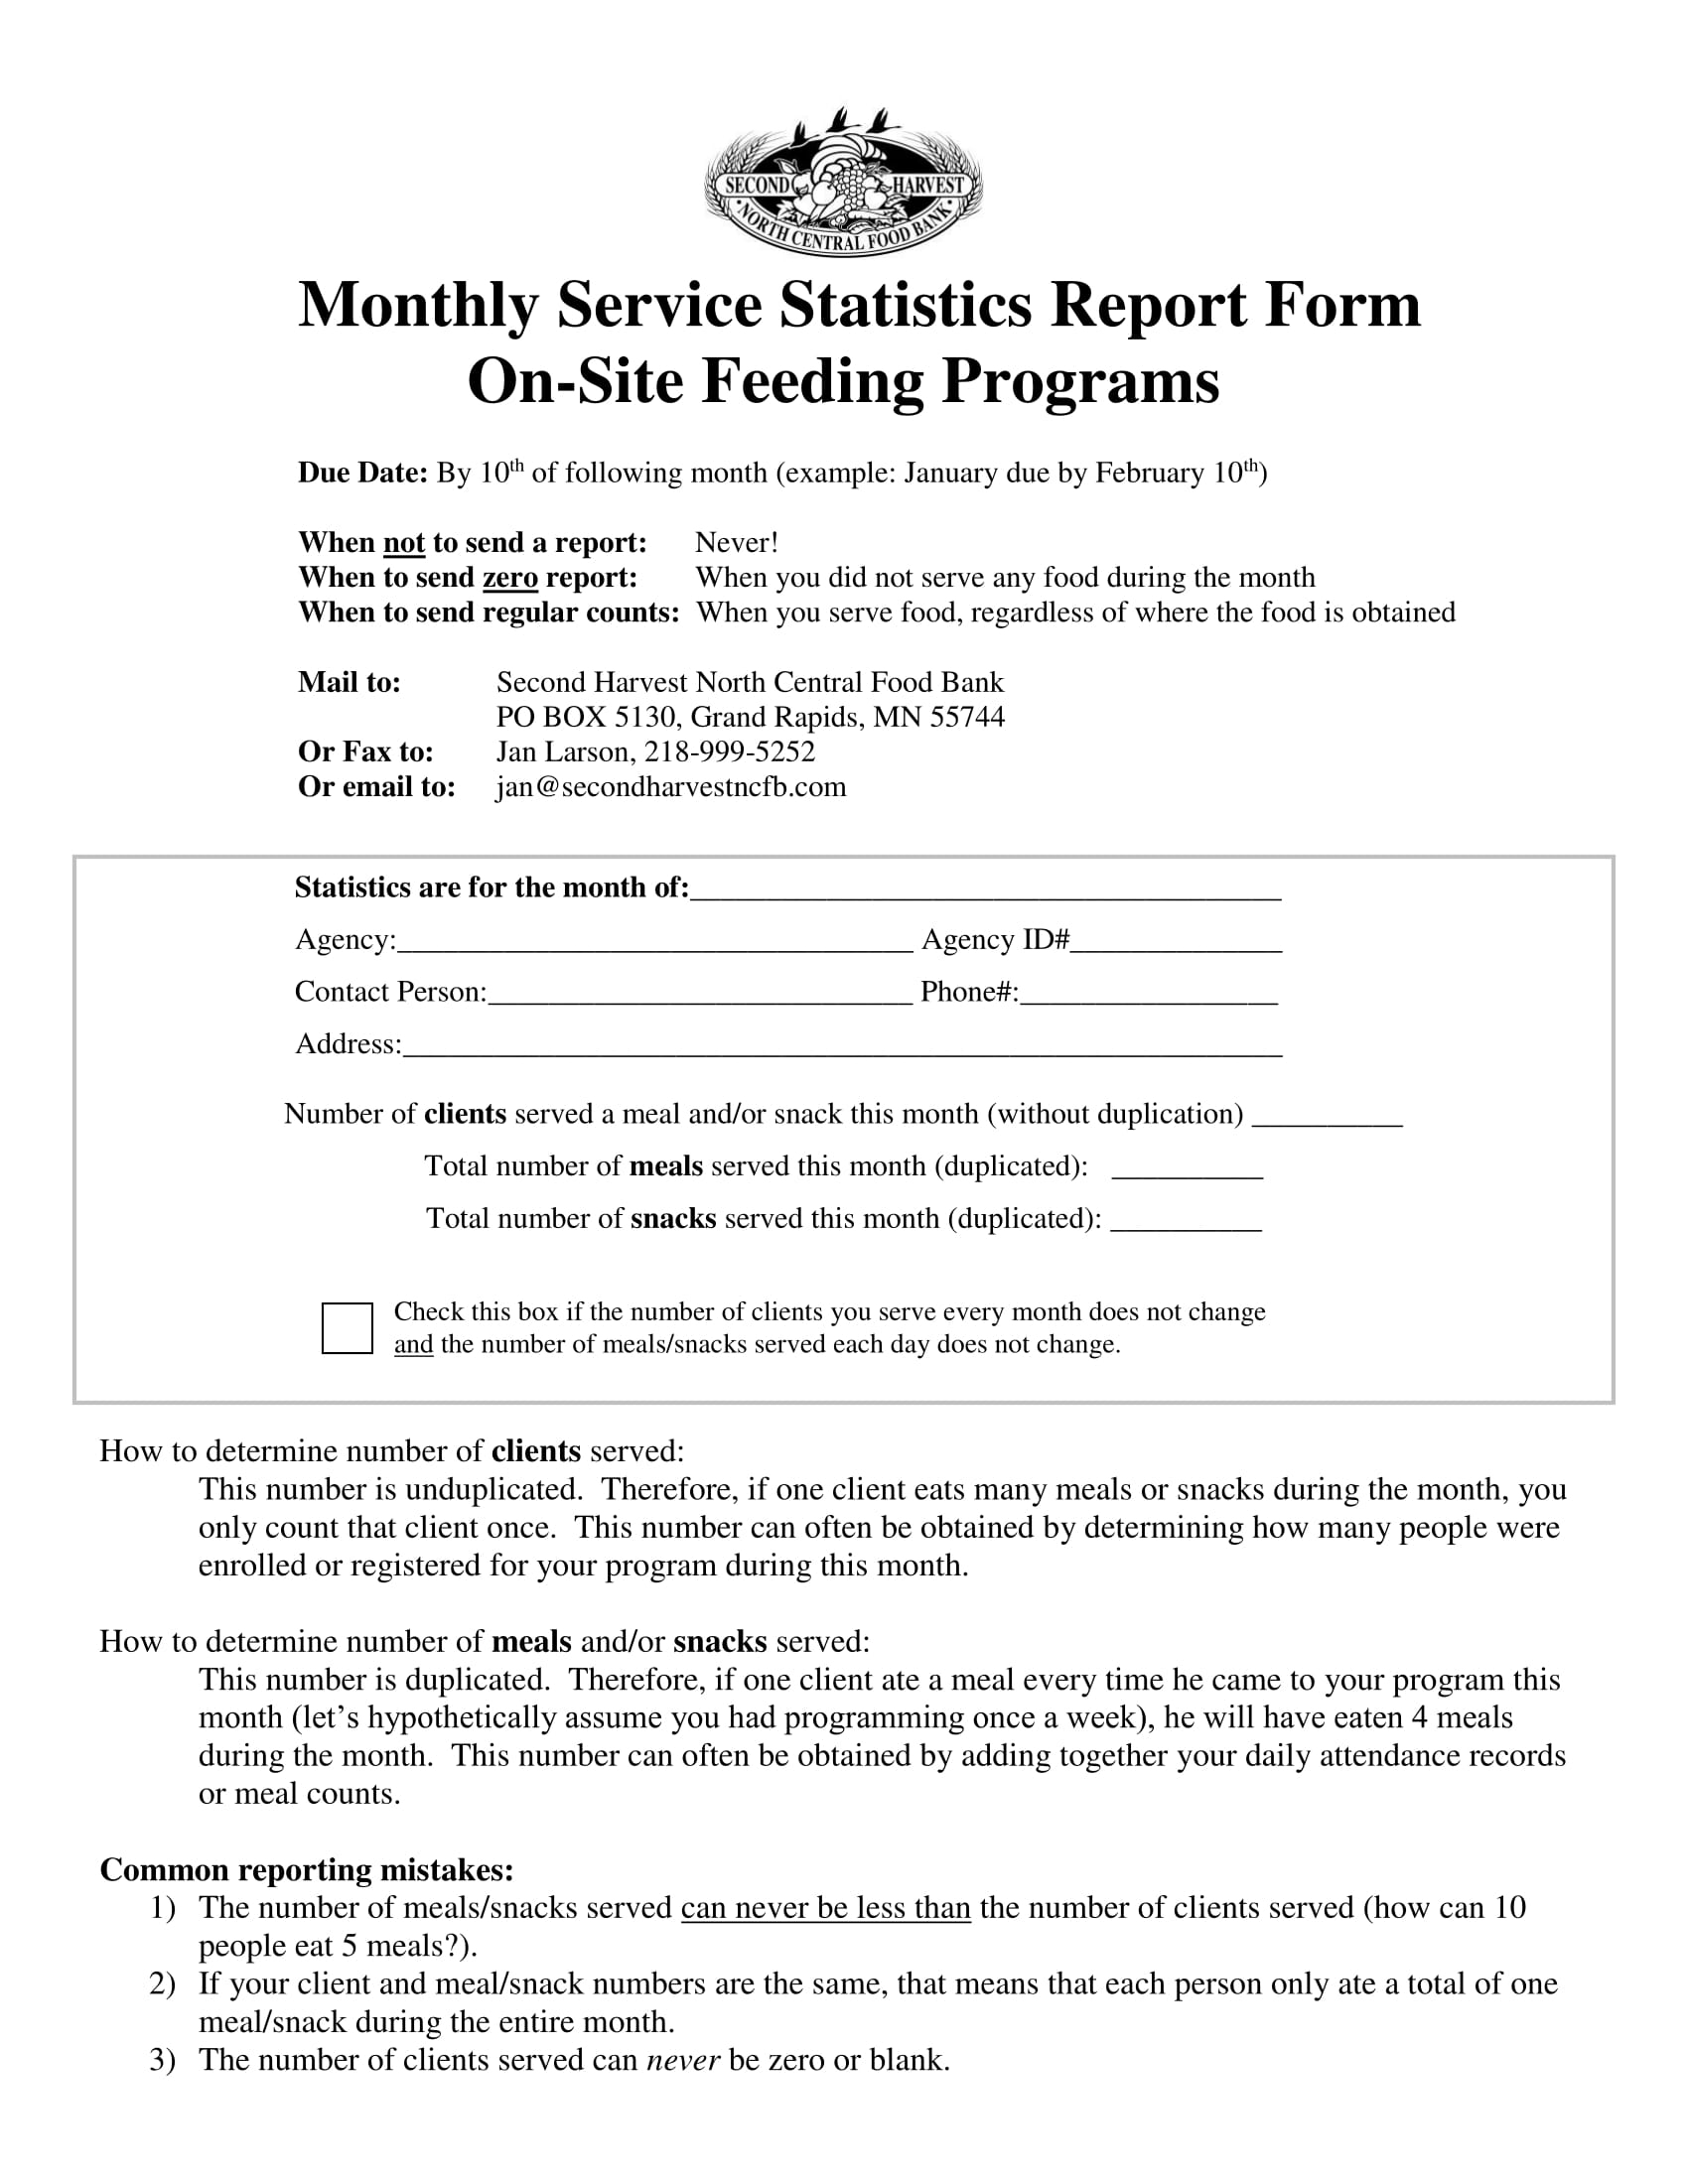 monthly service statistics report form 1